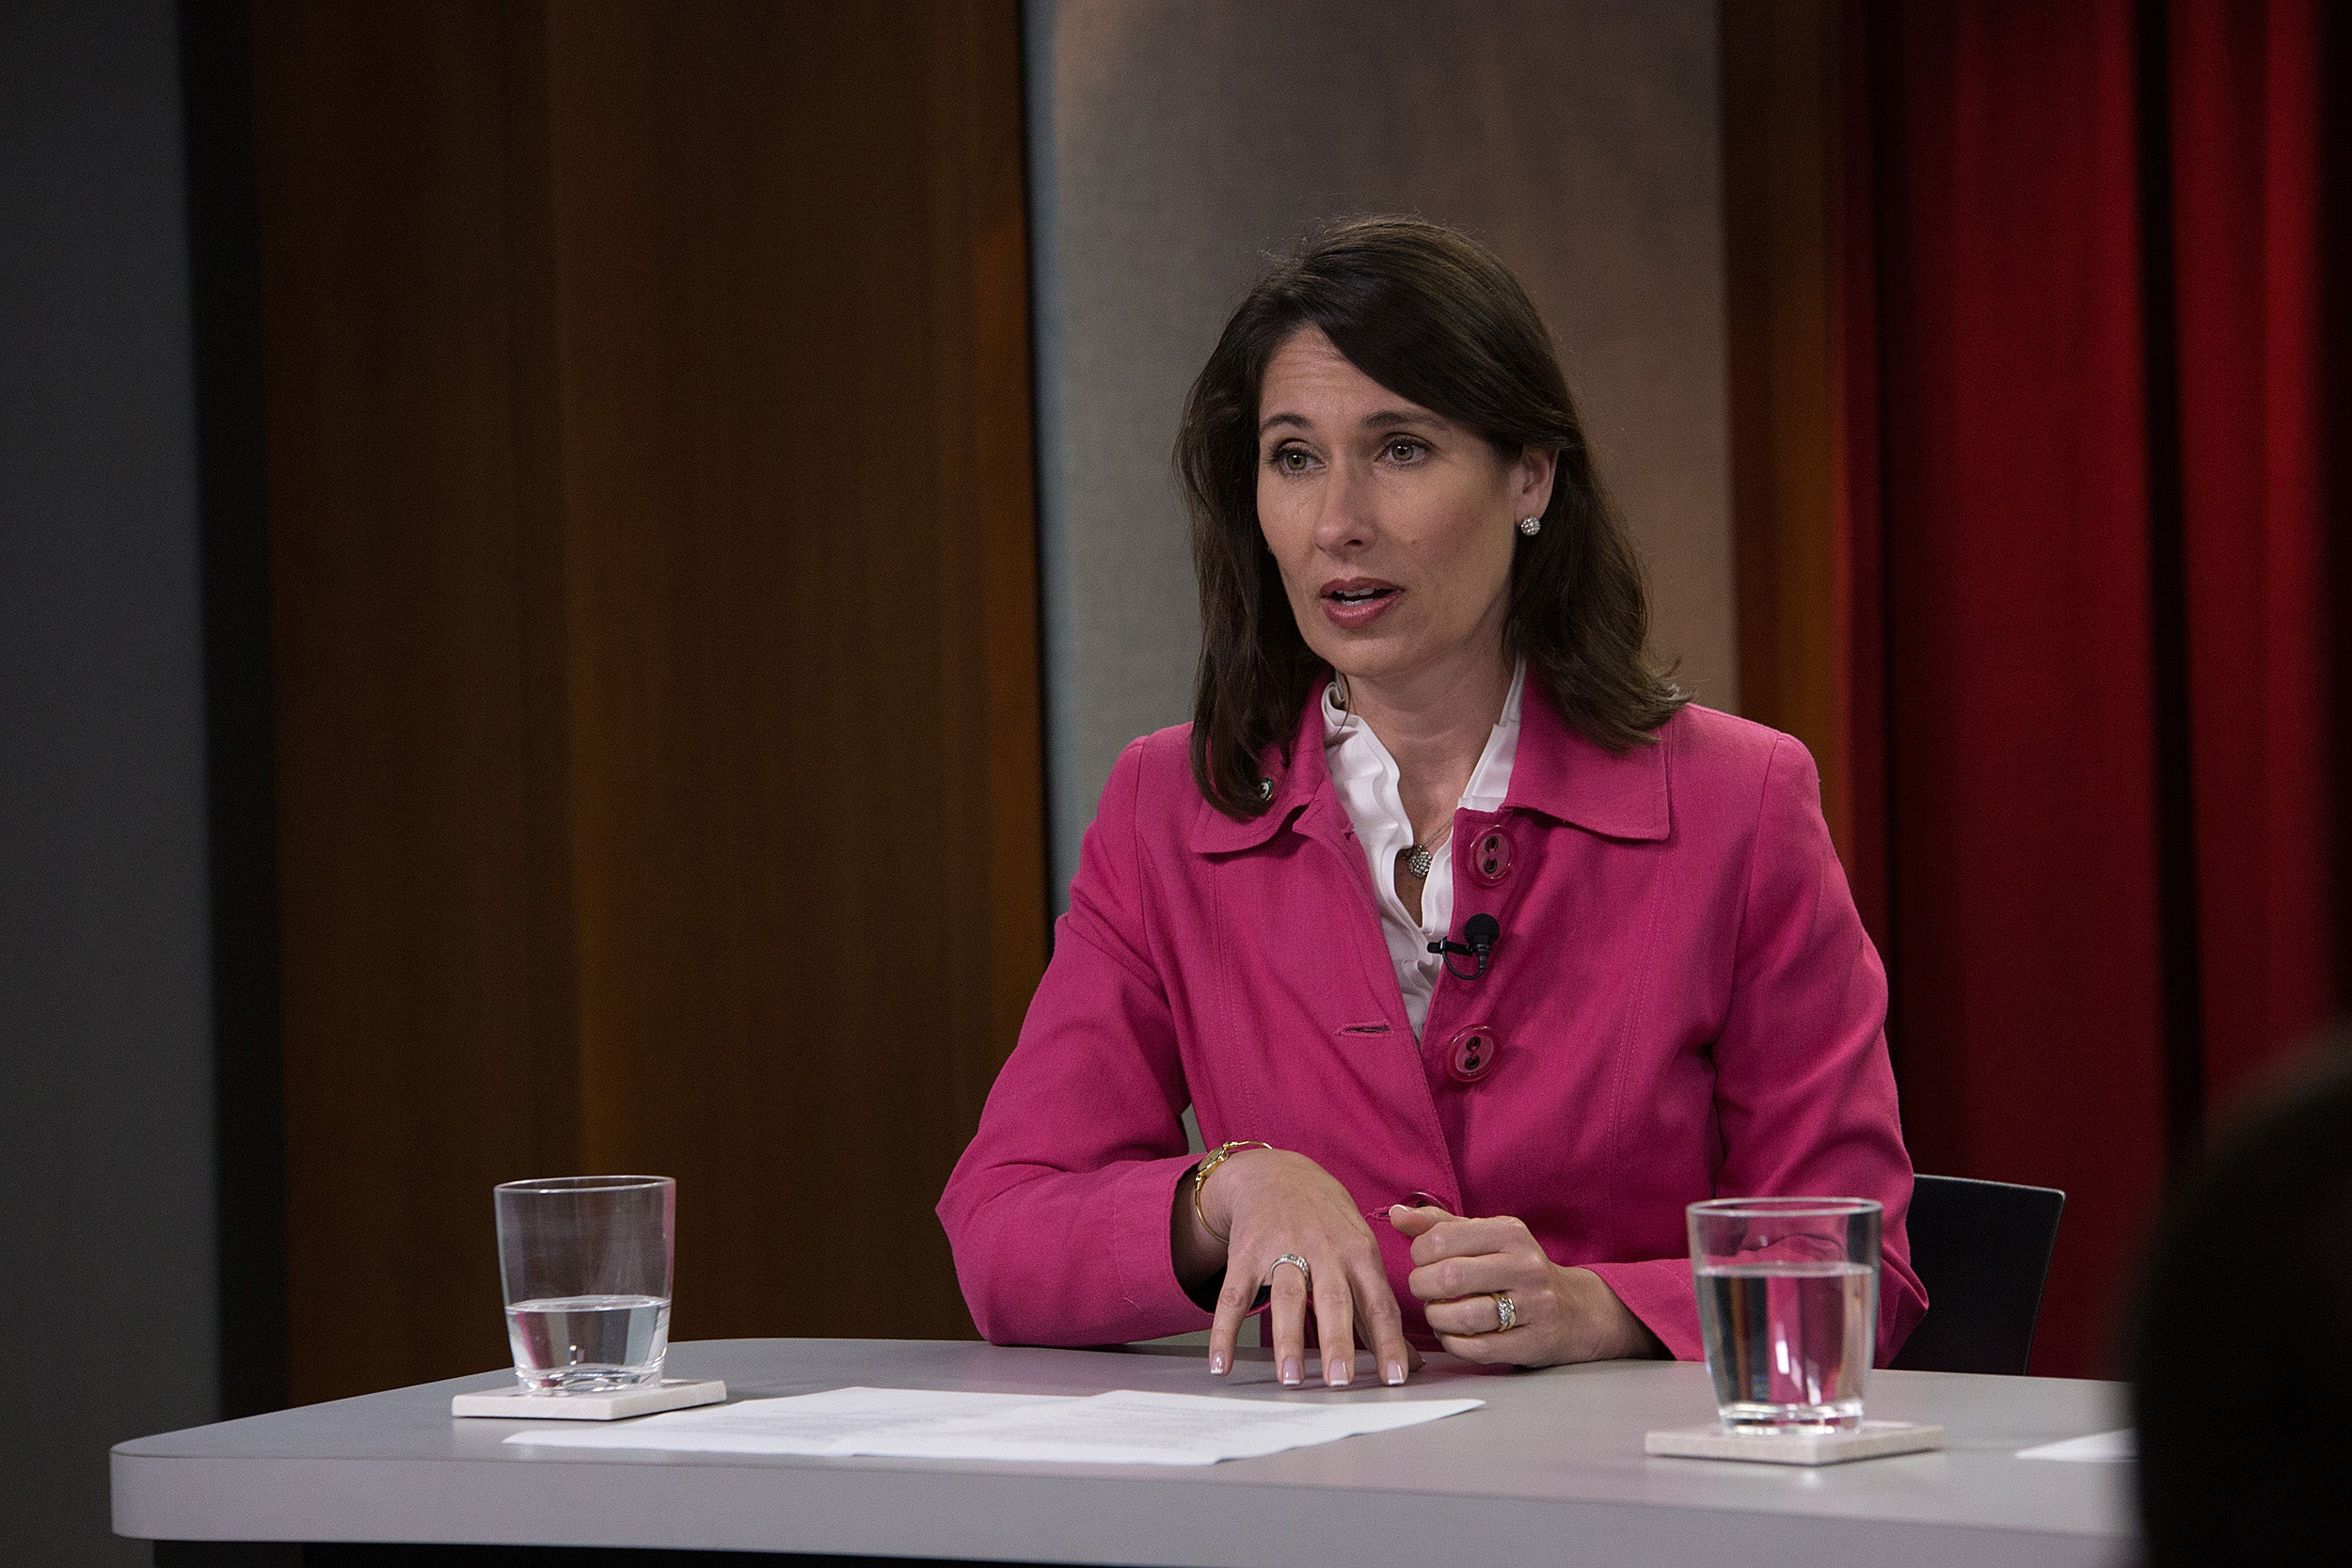 """Human beings do not make good choices behind the wheel,"" said Deborah Hersman at a Chan School panel discussion on the future of self-driving cars. ""We're hoping that machines will be better than us."""